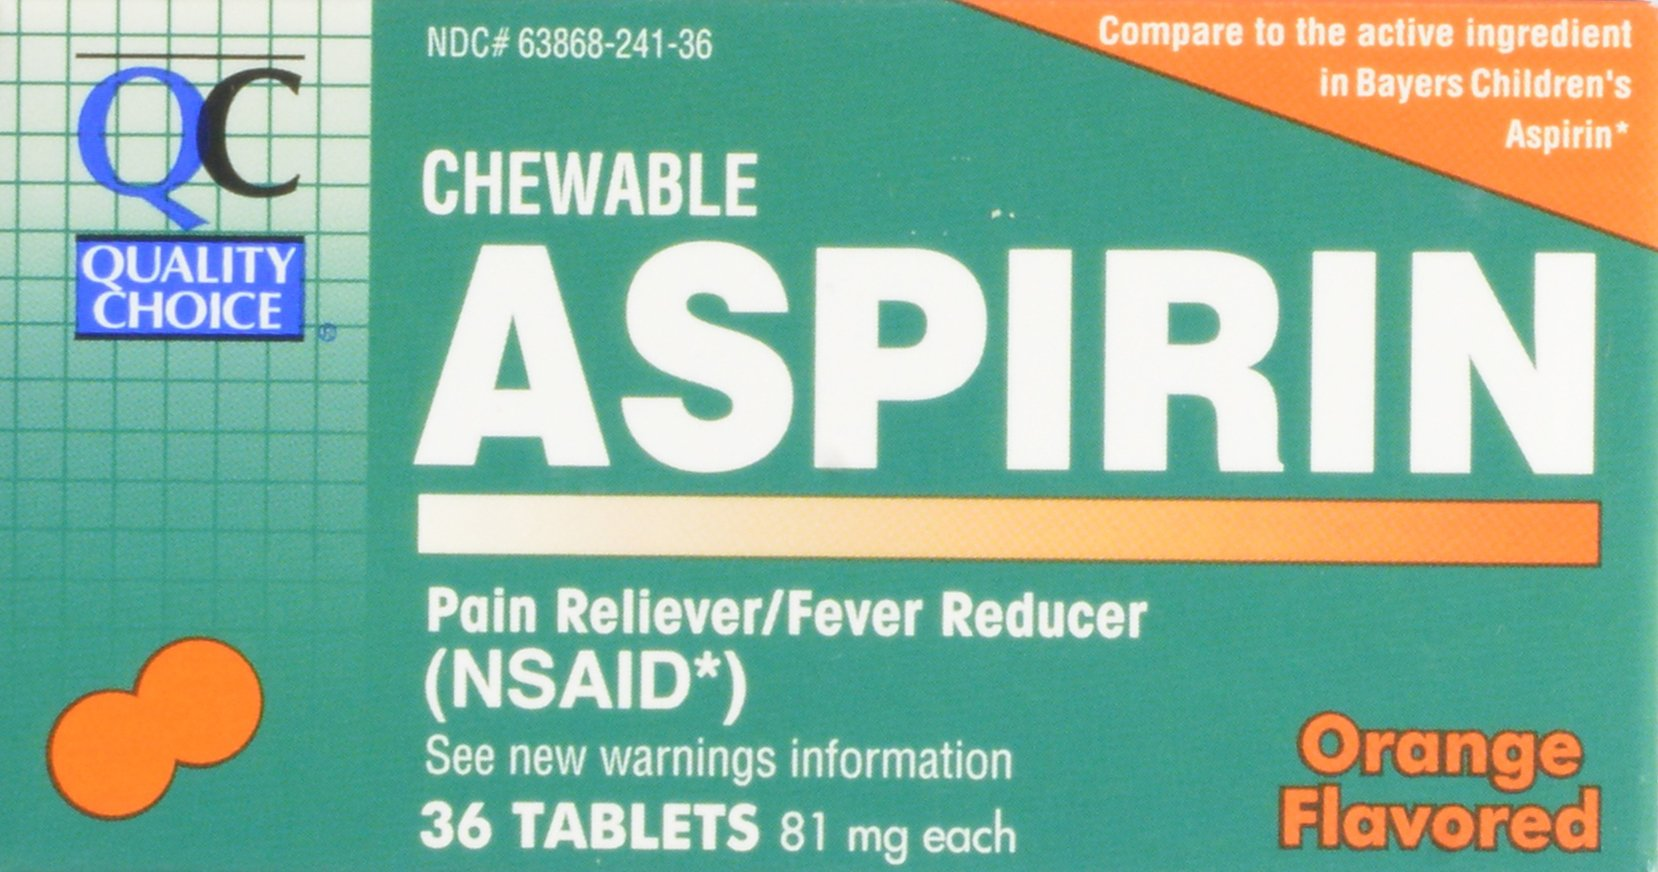 Quality Choice Children's Chewable Orange Flavored 81mg. Aspirin Tablet 36-Count Boxes (Pack of 24)